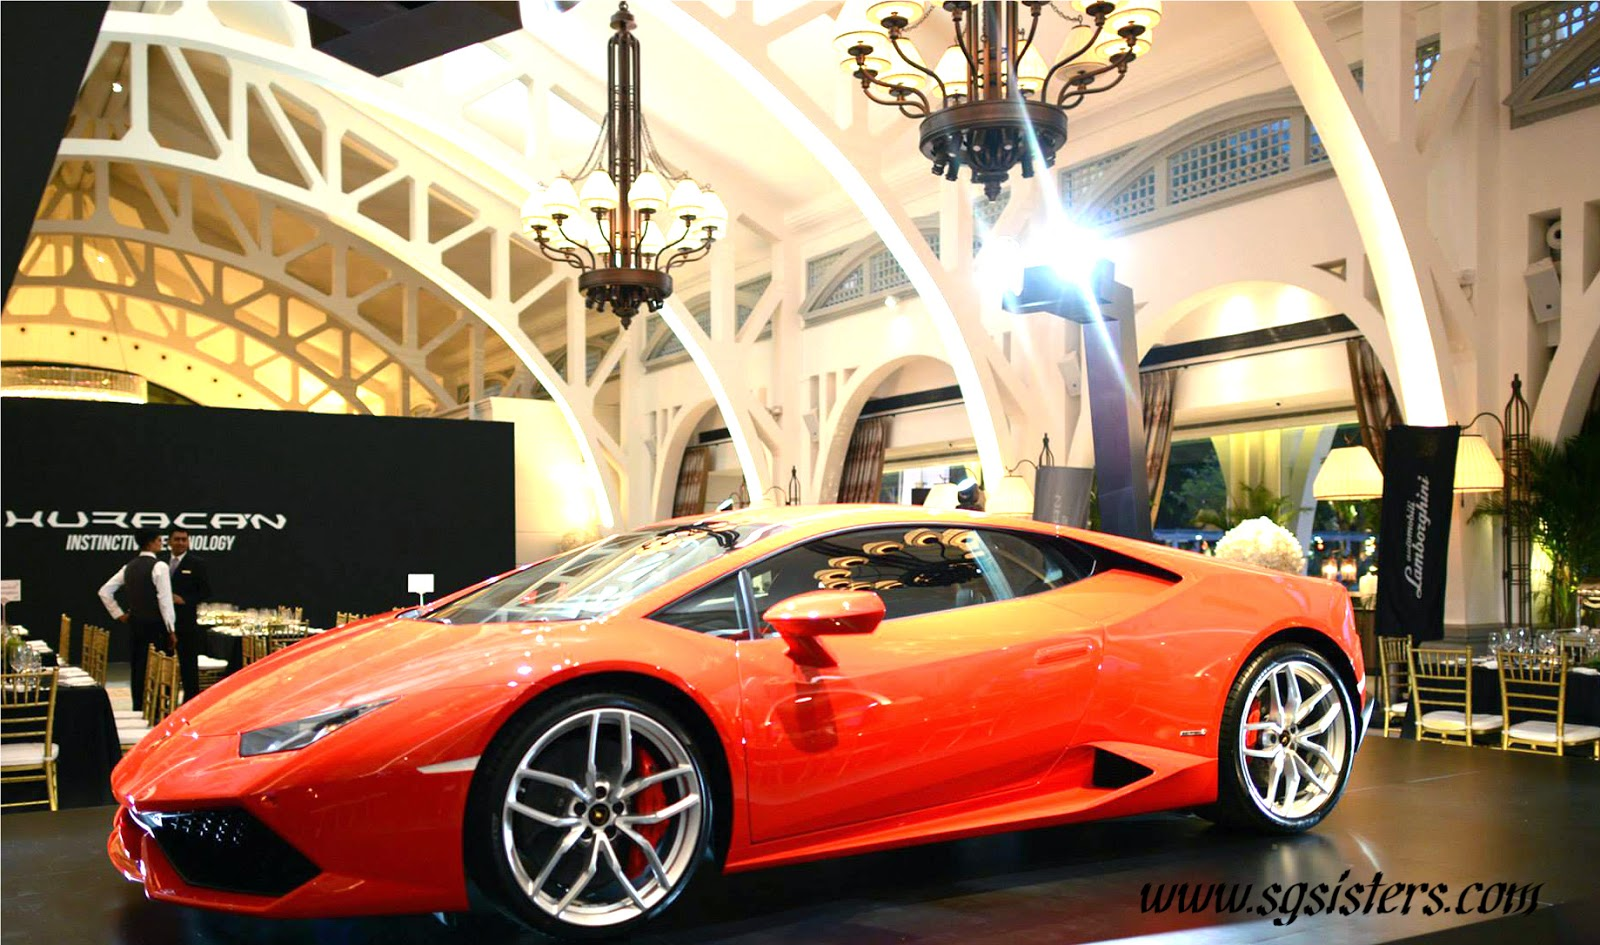 6 sept 2014 the all new lamborghini huracan lp610 4 was unveiled at clifford pier singapore over a delightful dinner exotic car enthusiasts and